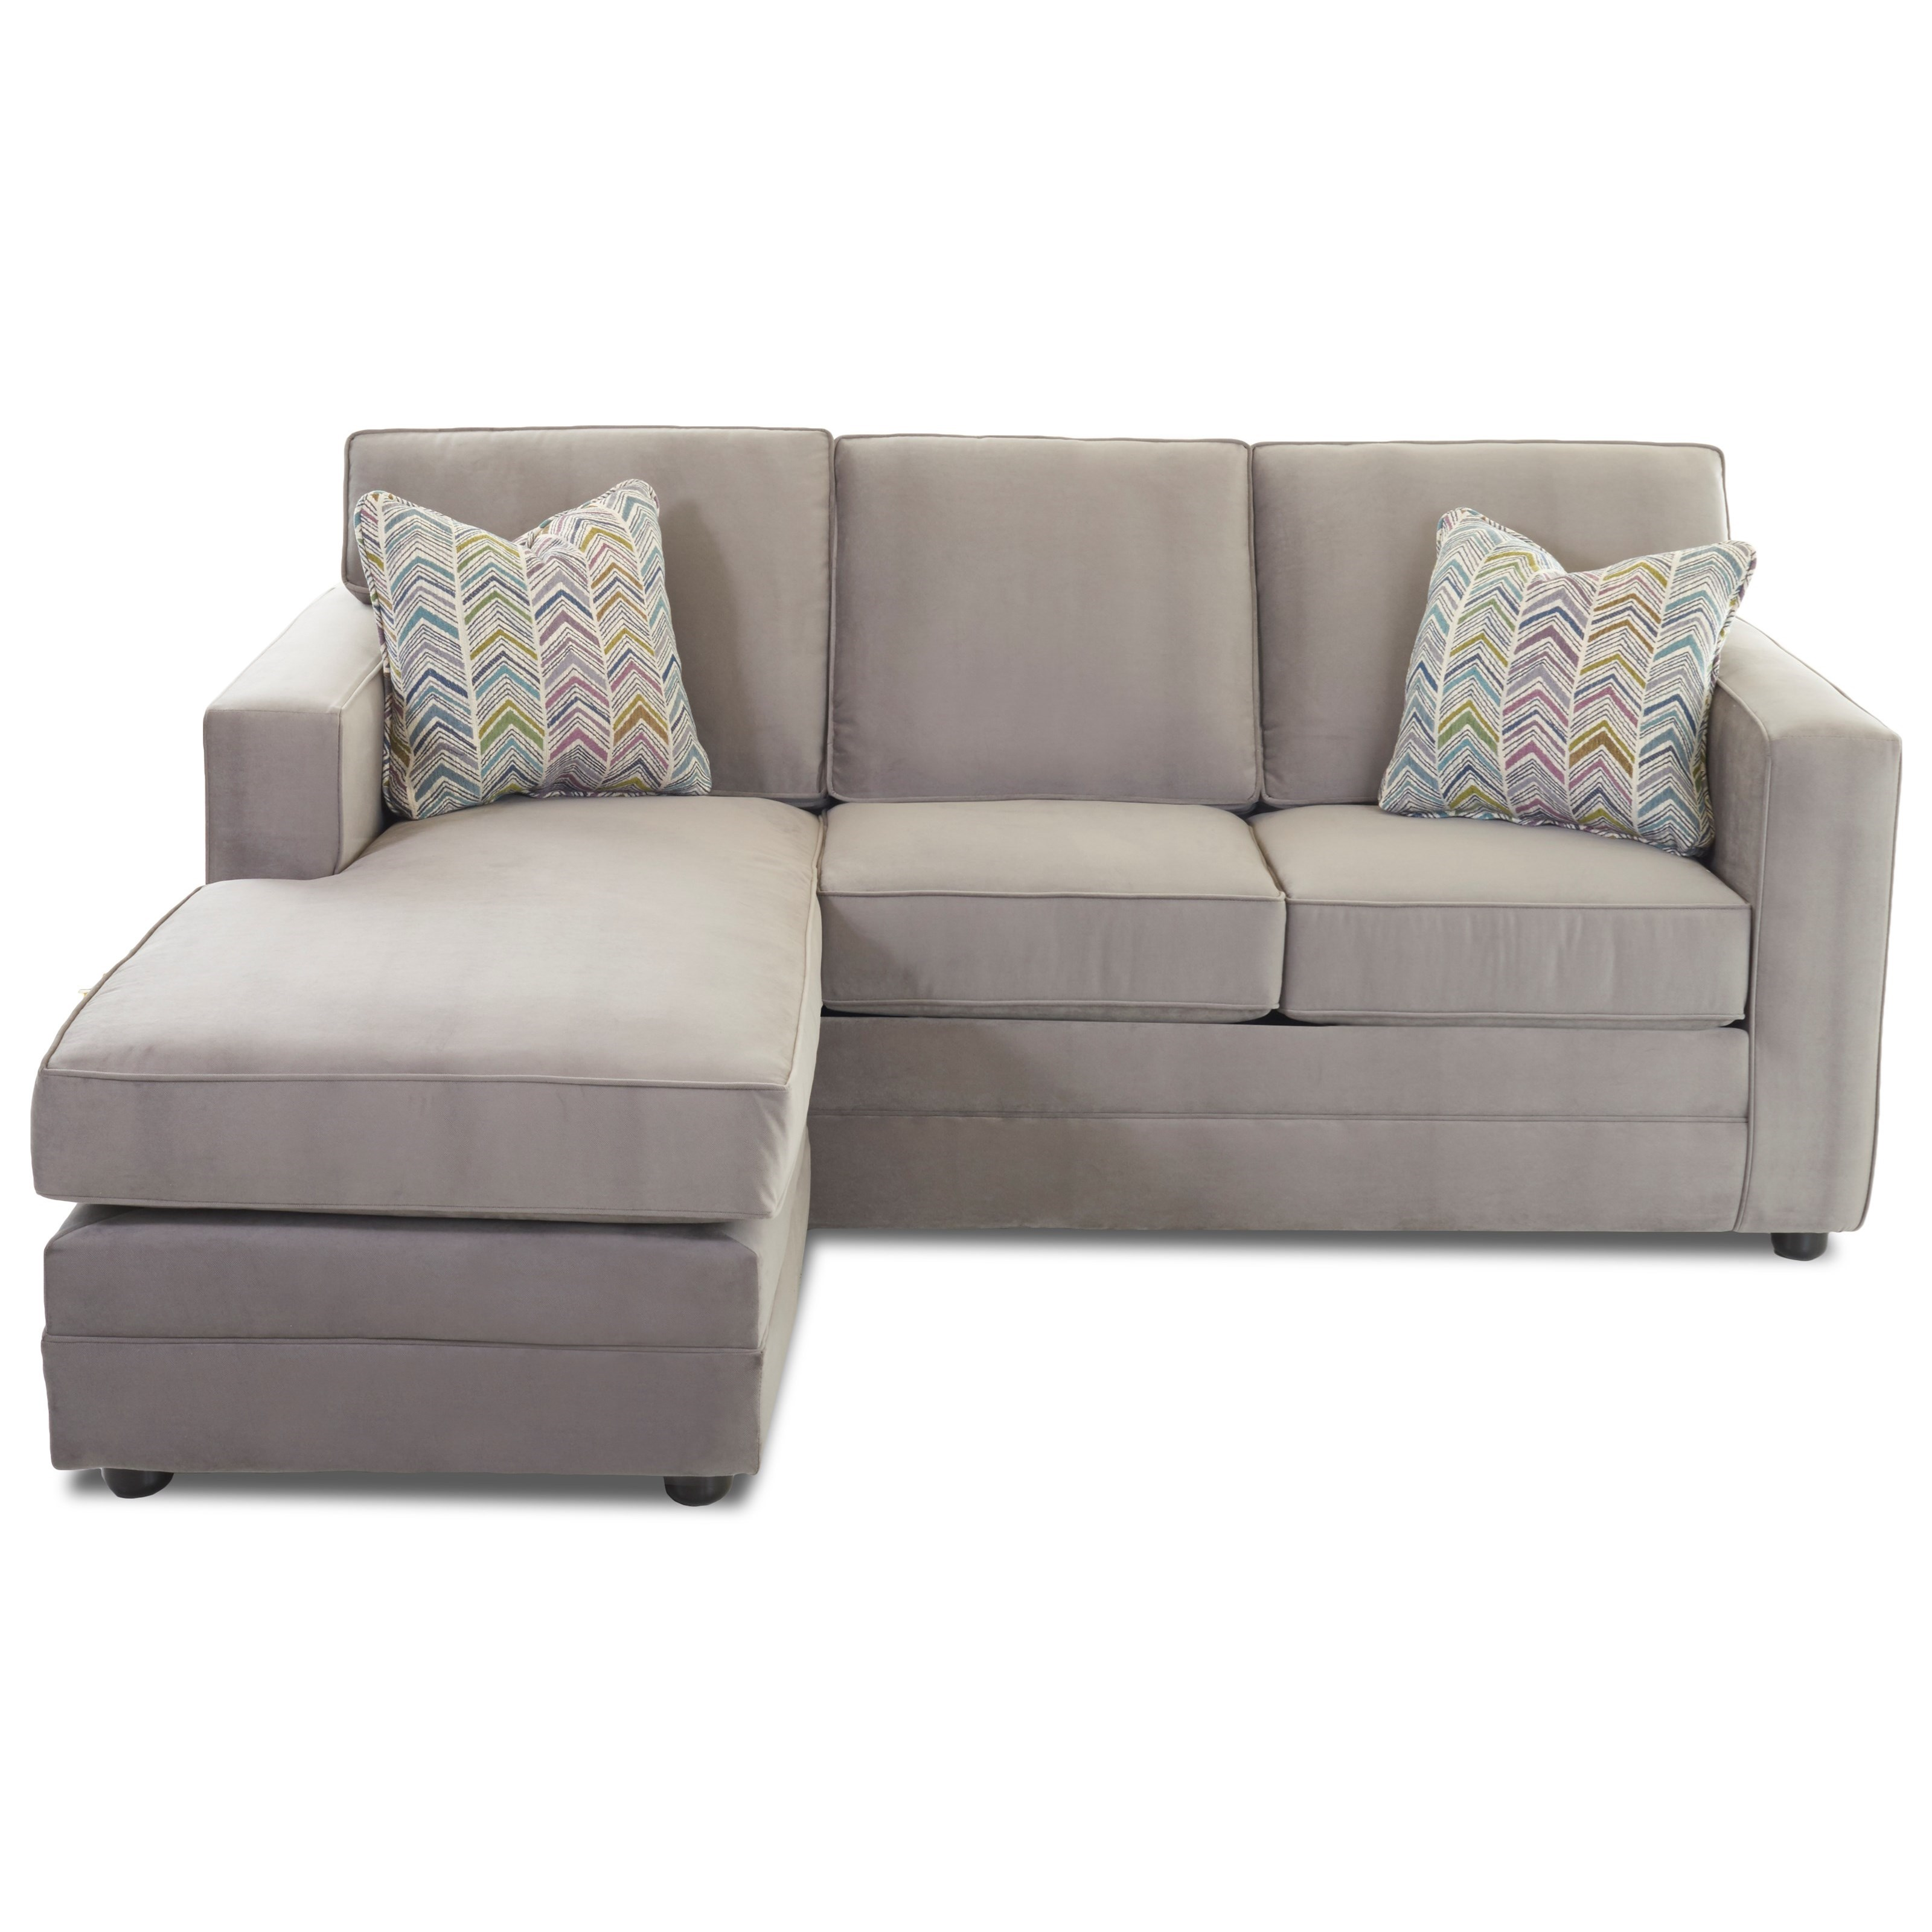 Klaussner Berger Chaise Sleeper Sofa With Queen Size Air Coil